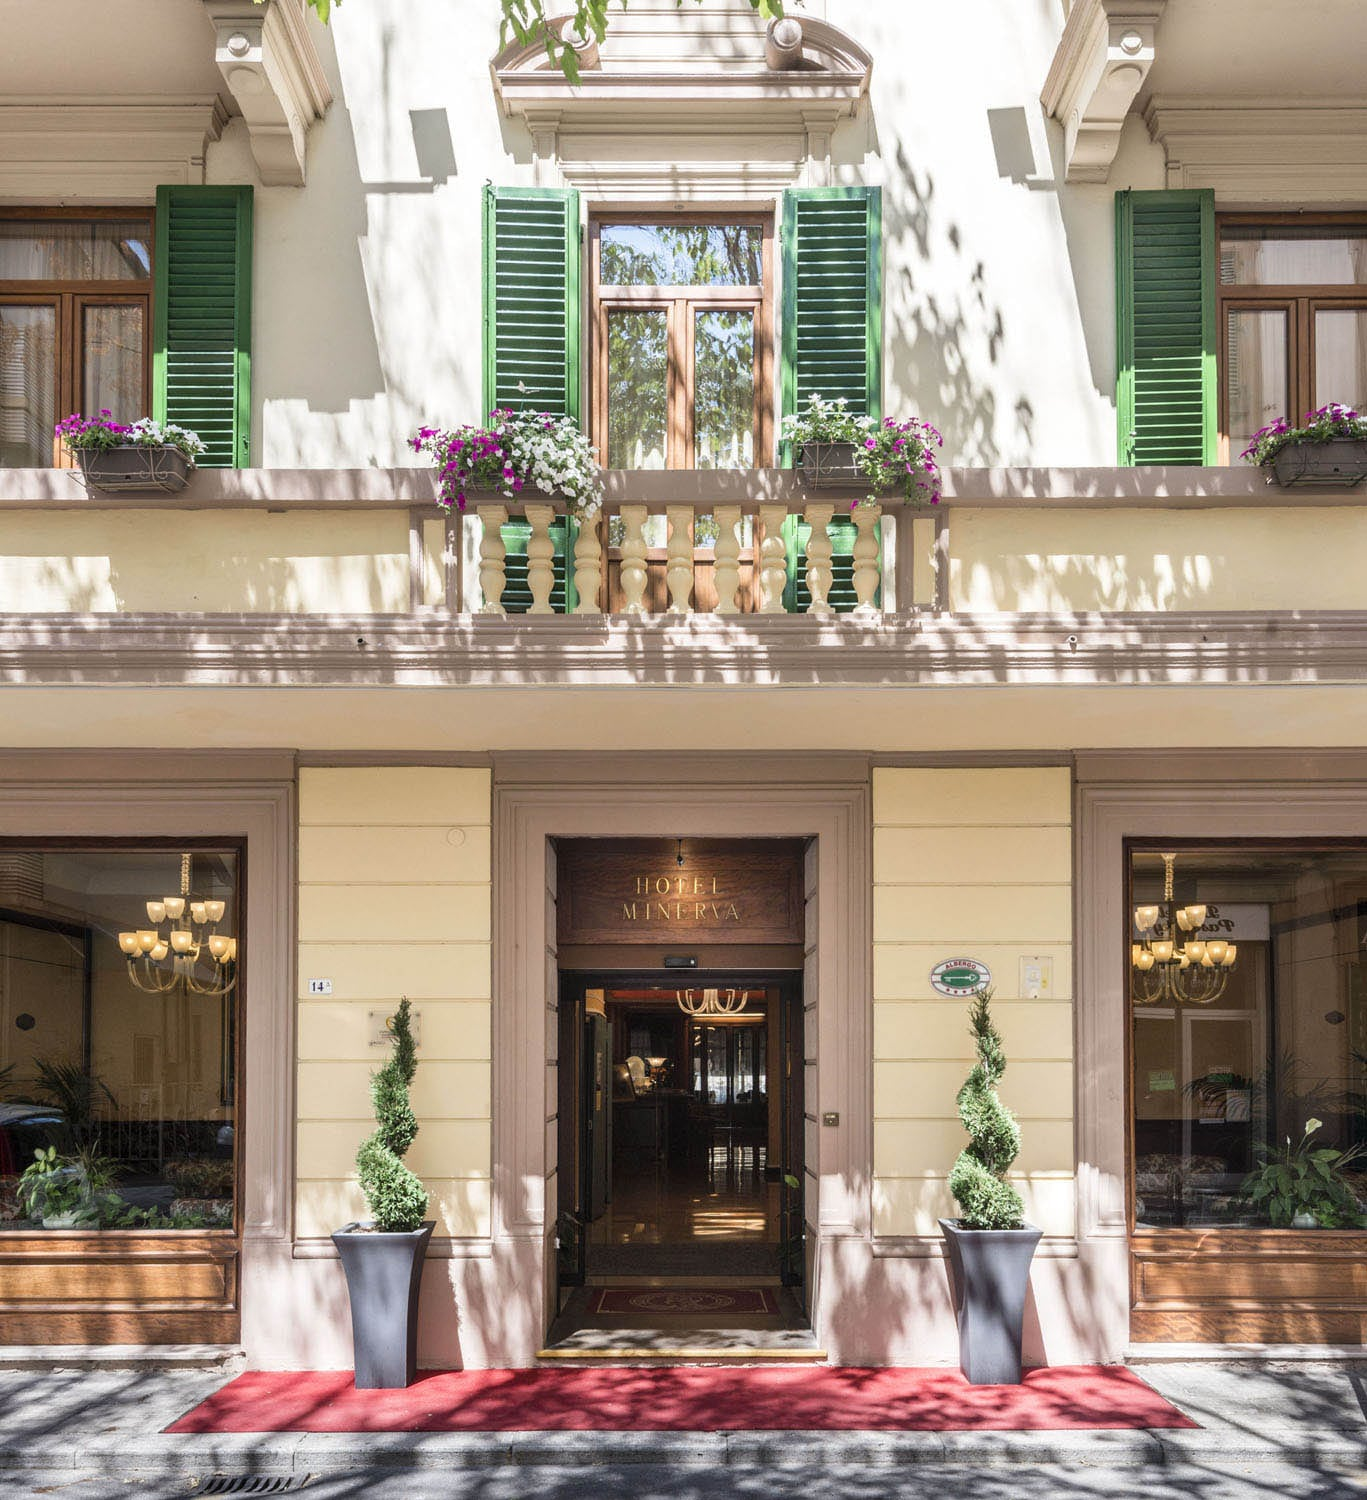 Rooms: Hotel Minerva Palace, Montecatini